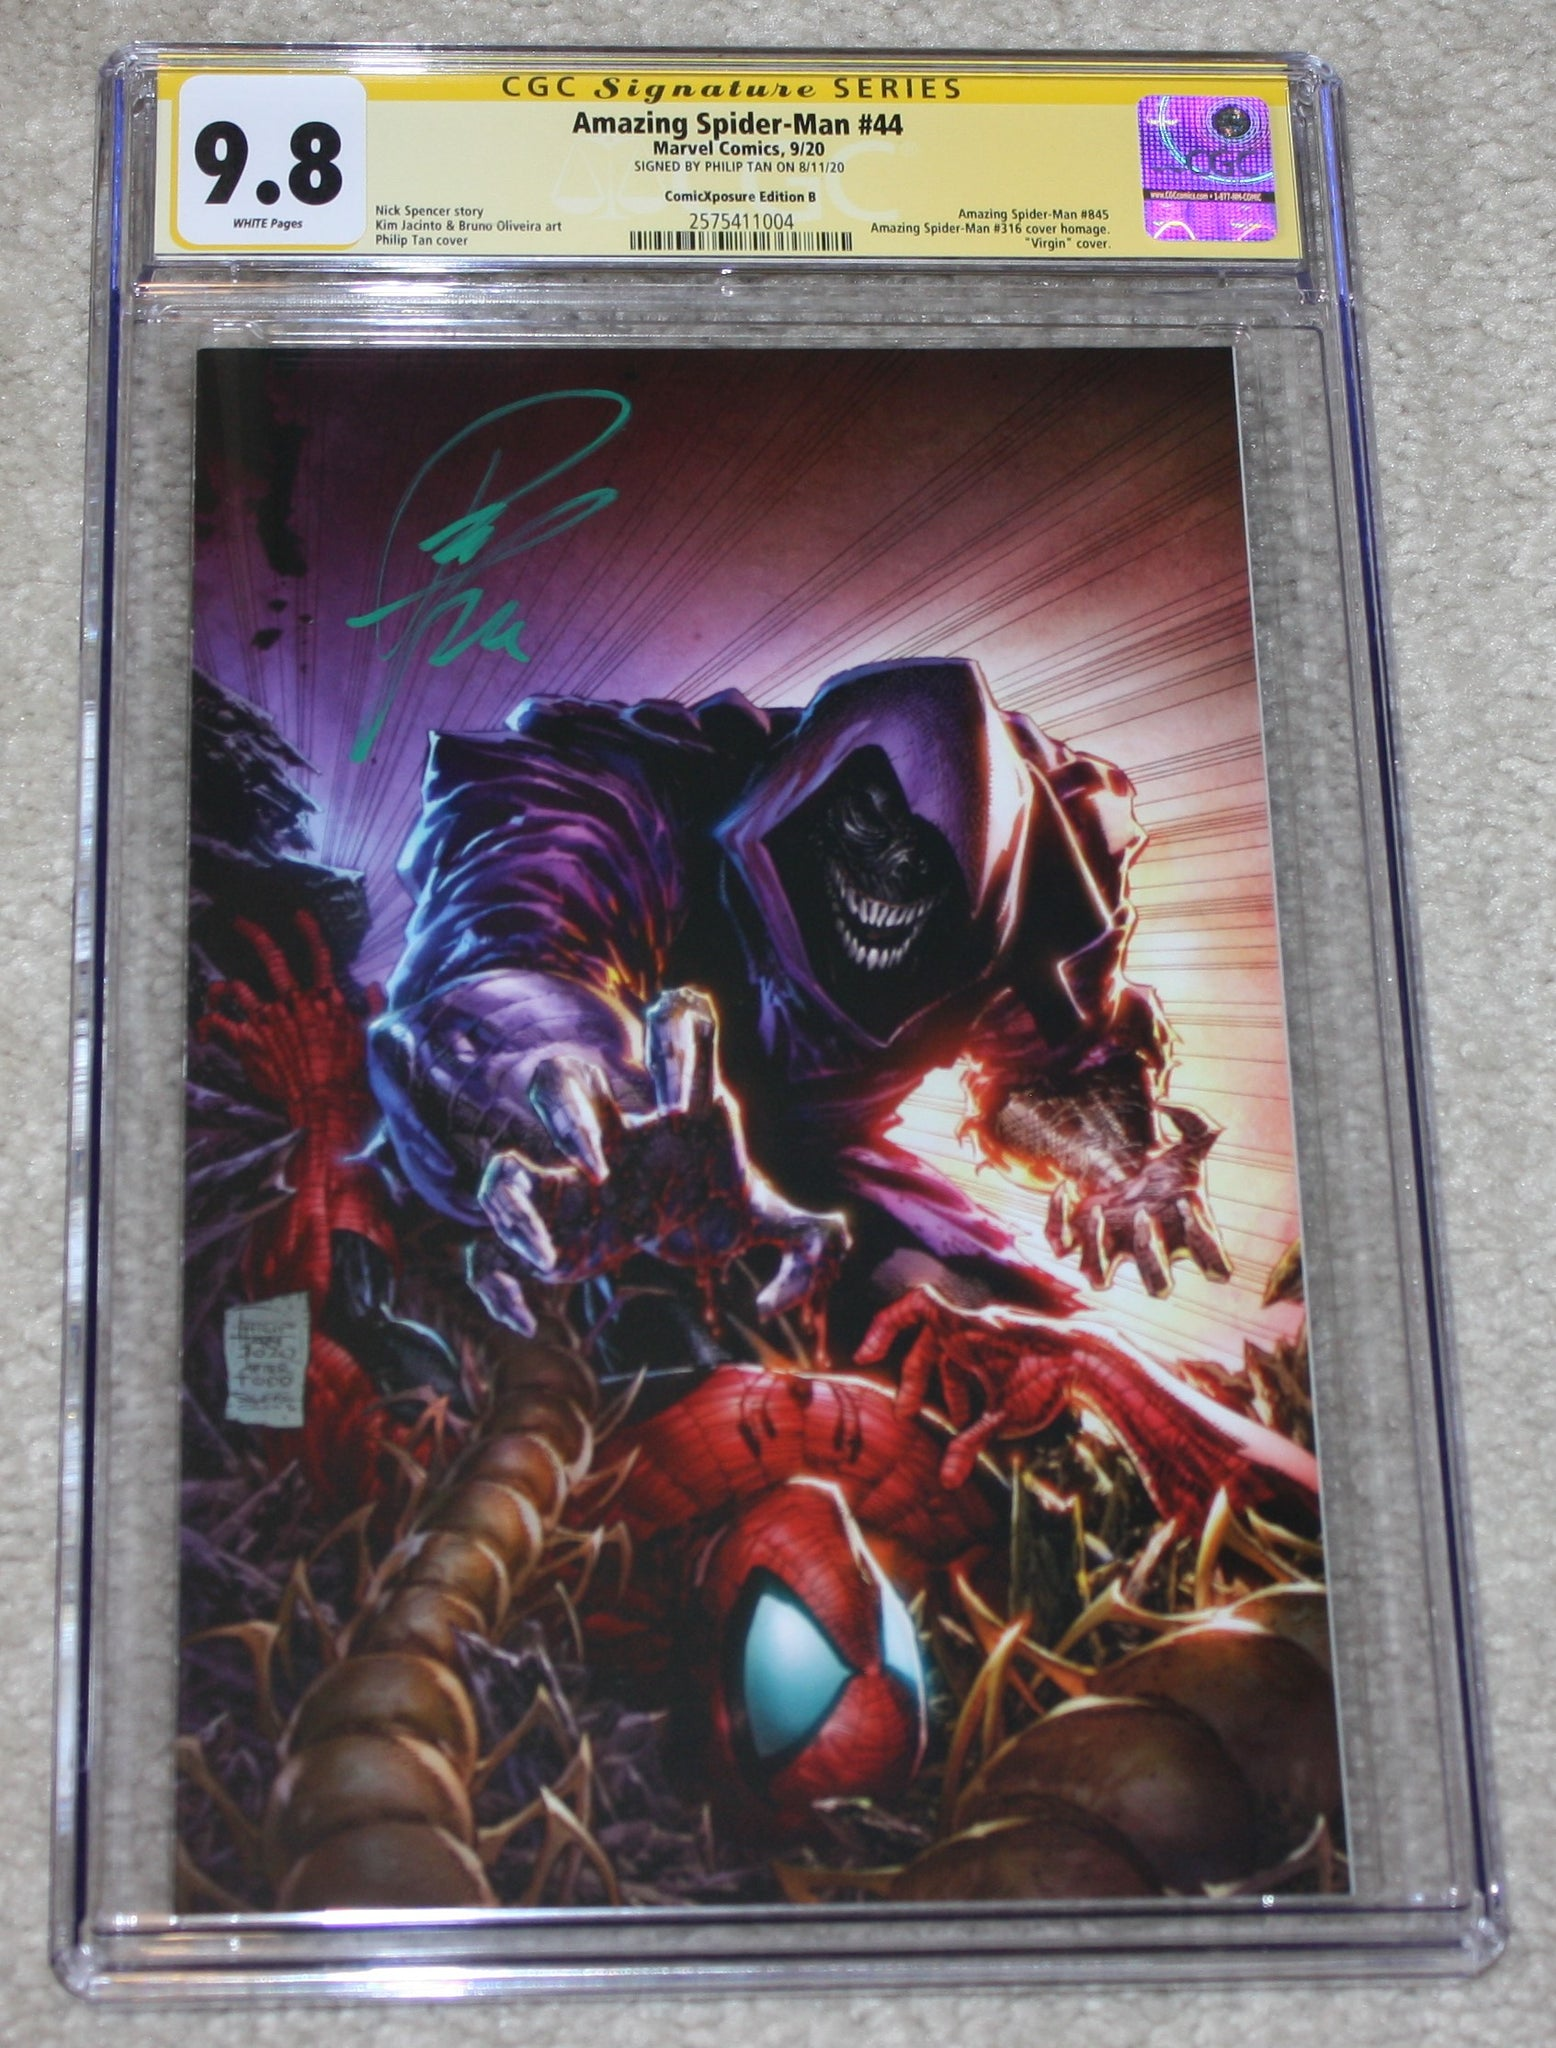 Amazing Spider-man 44 Philip Tan 316 Todd McFarlane Homage Venom Kindred Virgin Variant DC Comics Marvel Comics X-Men Batman East Side Comics Virgin Exclusive cgc signed ss comics